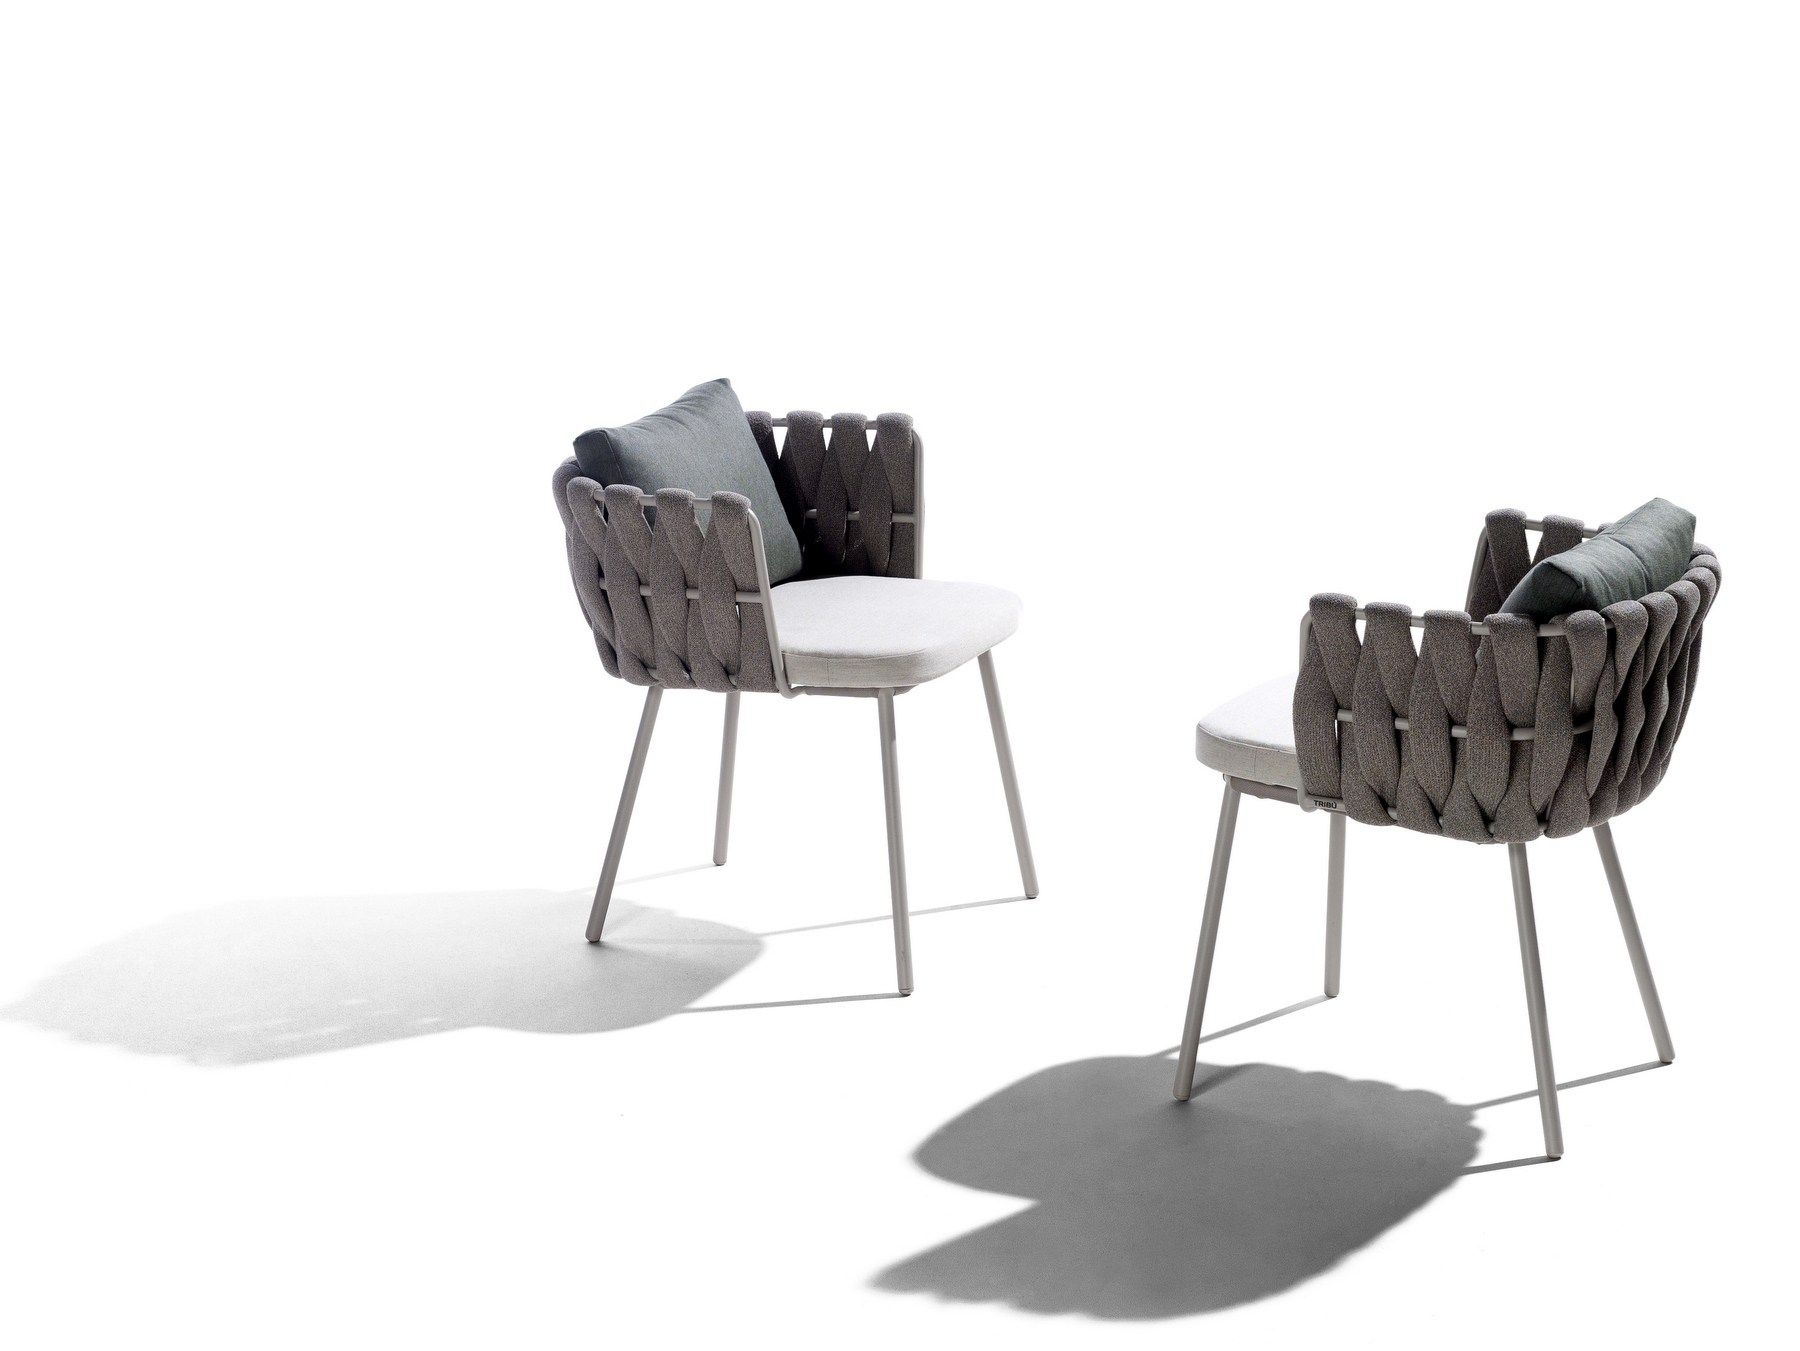 Pitaya Sedie ~ Garden chair with armrests tosca collection by tribÙ design